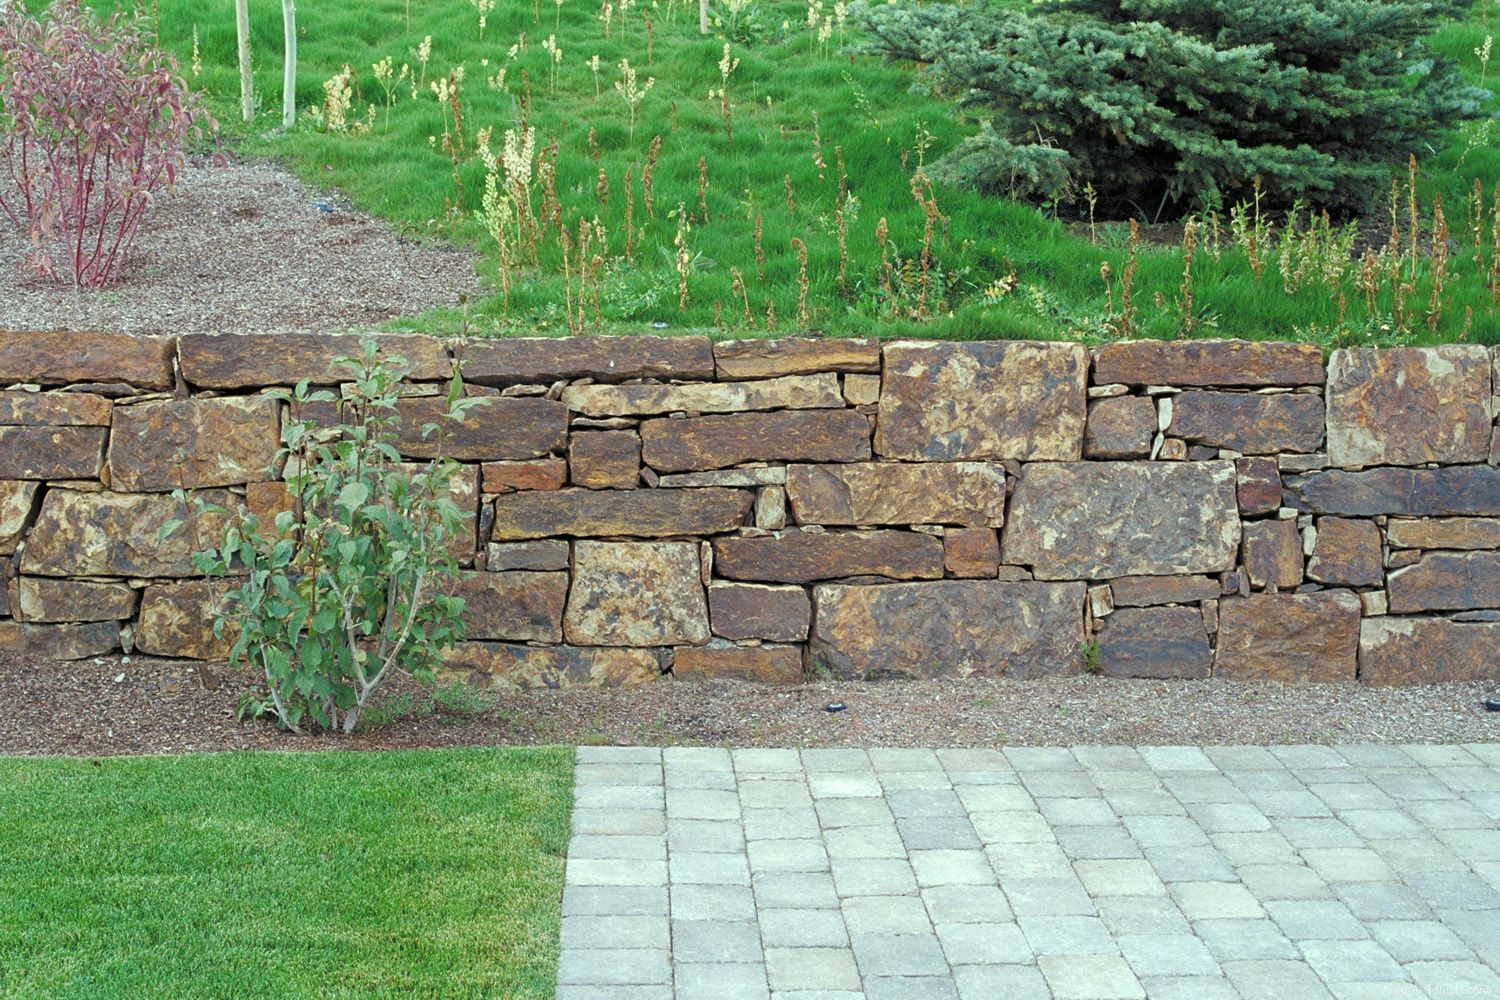 Natural Stone Dry Stack Retaining Wall Cut Sheet Tile Image Full Size Link To This Slide